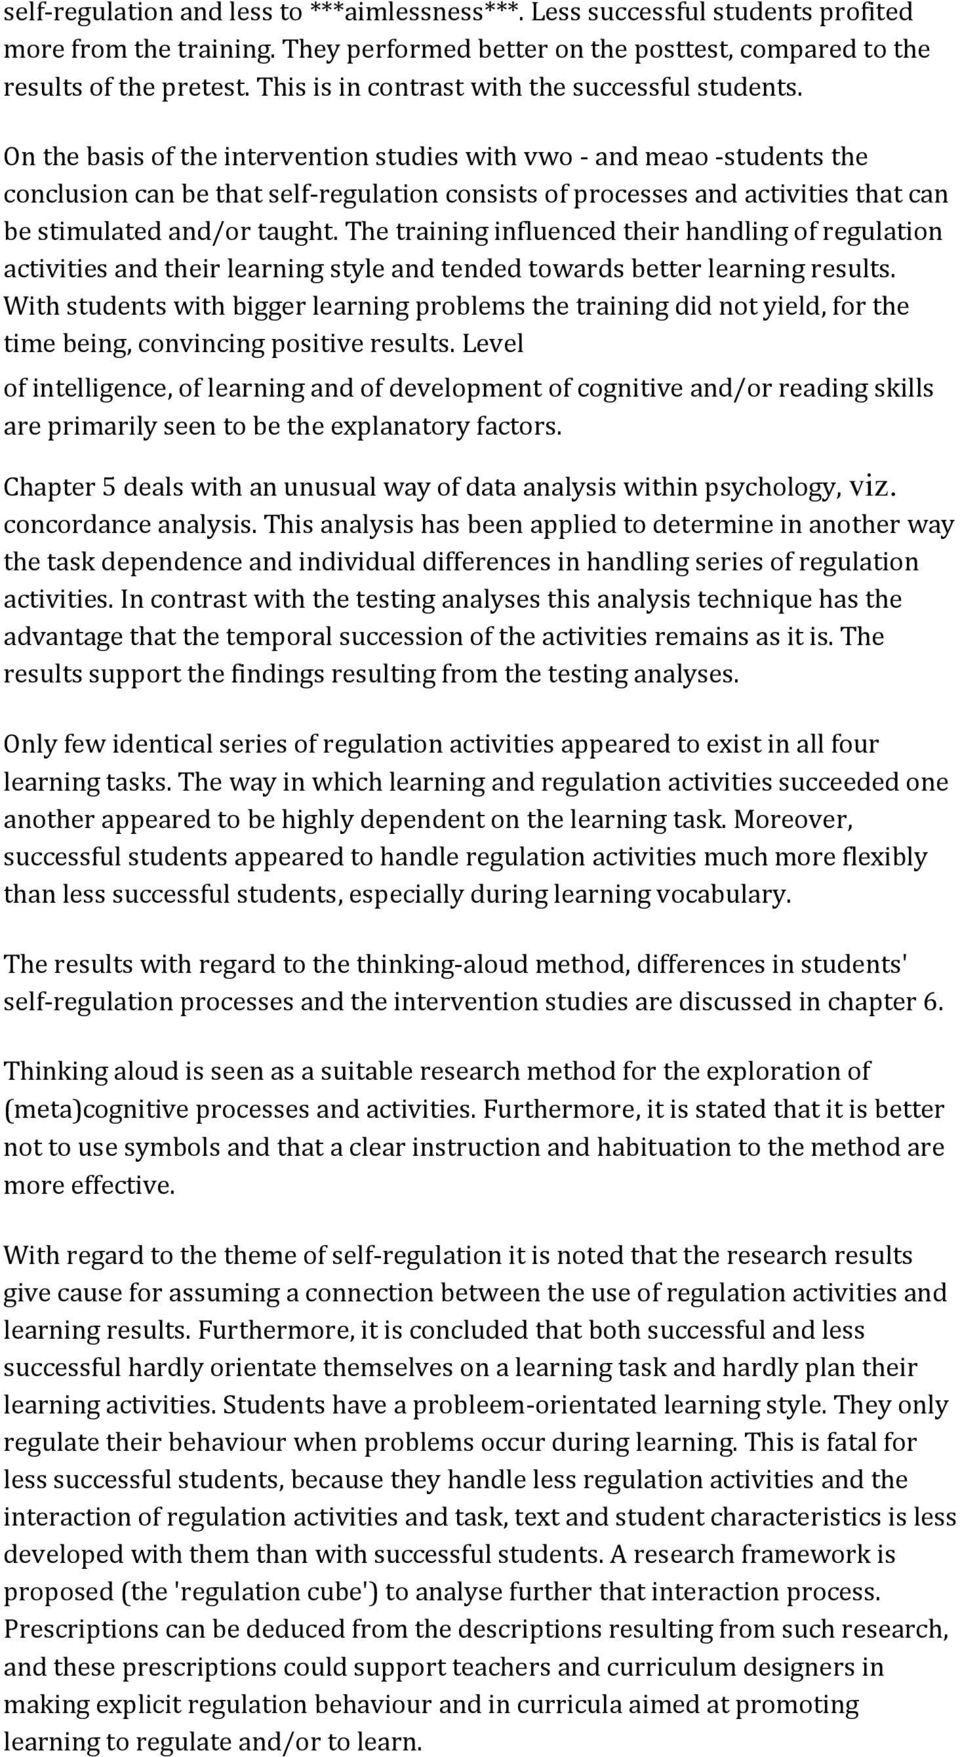 On the basis of the intervention studies with vwo - and meao -students the conclusion can be that self-regulation consists of processes and activities that can be stimulated and/or taught.